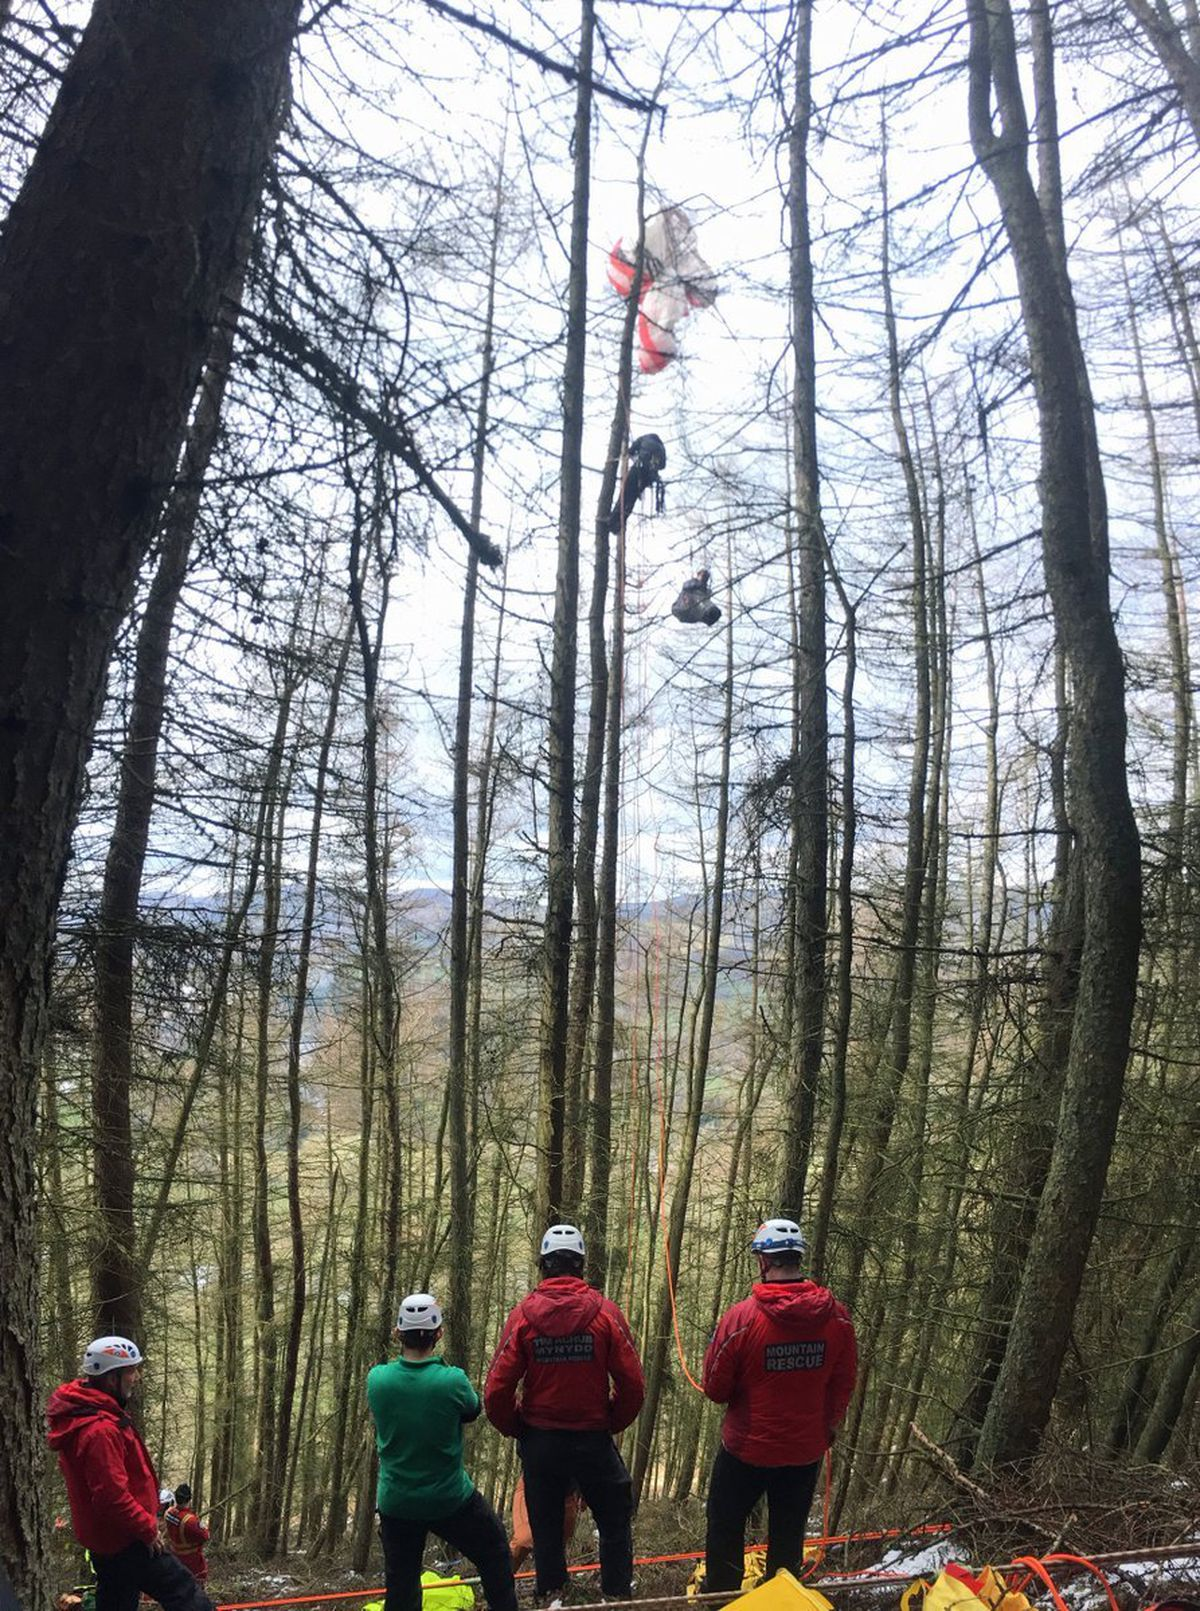 Photo from North East Wales Search and Rescue Team of the rescue of the paraglider pilot.